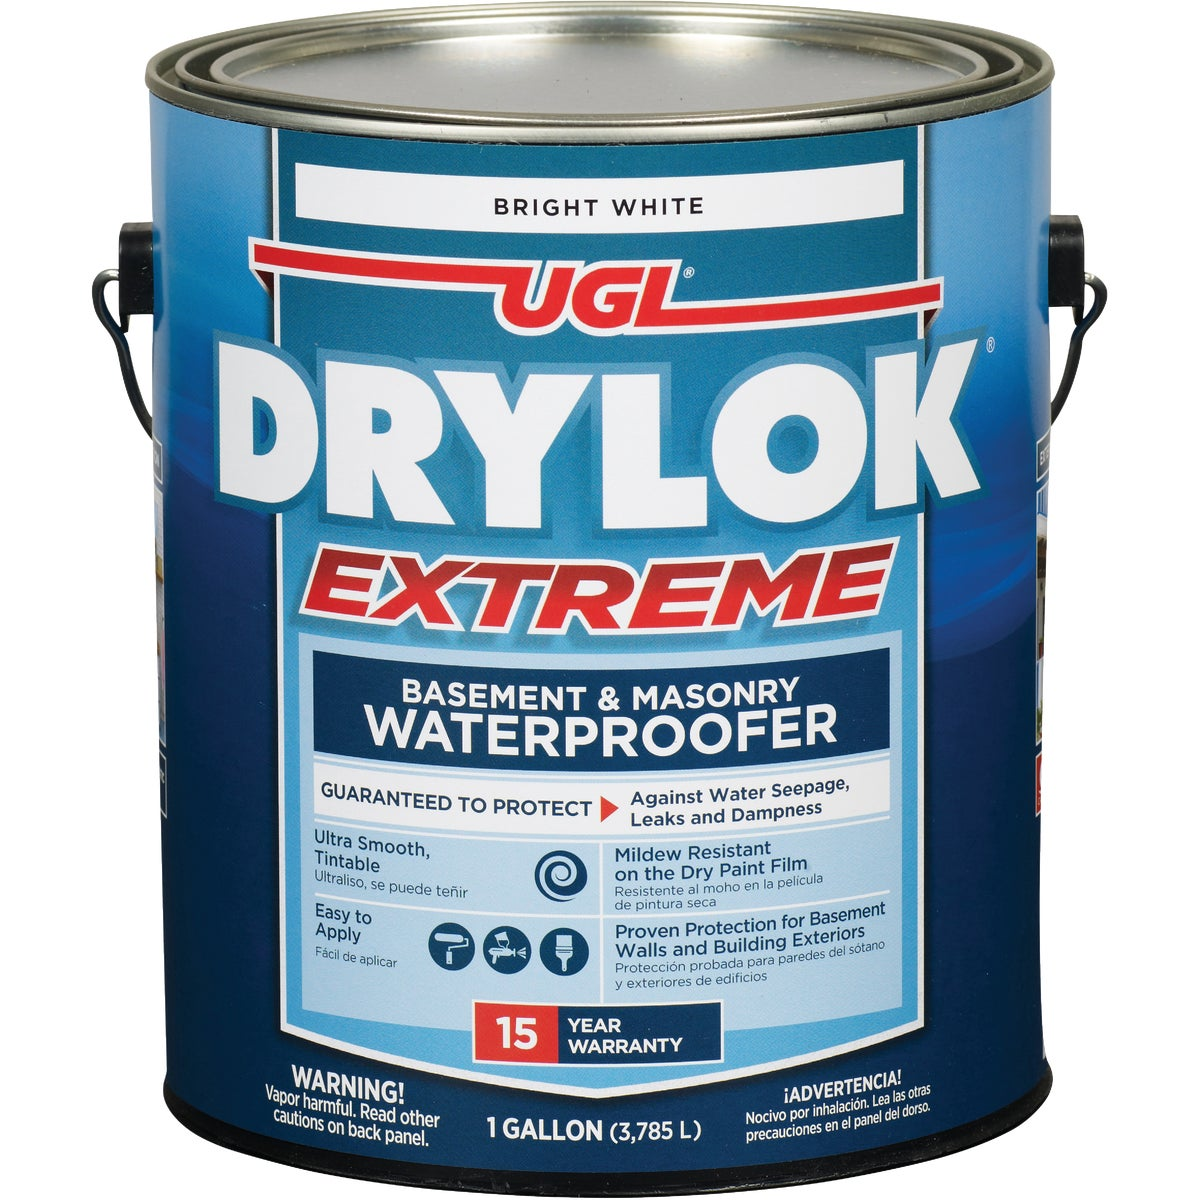 DRYLOK WATERPROOF PAINT - 28613 by United Gilsonite Lab